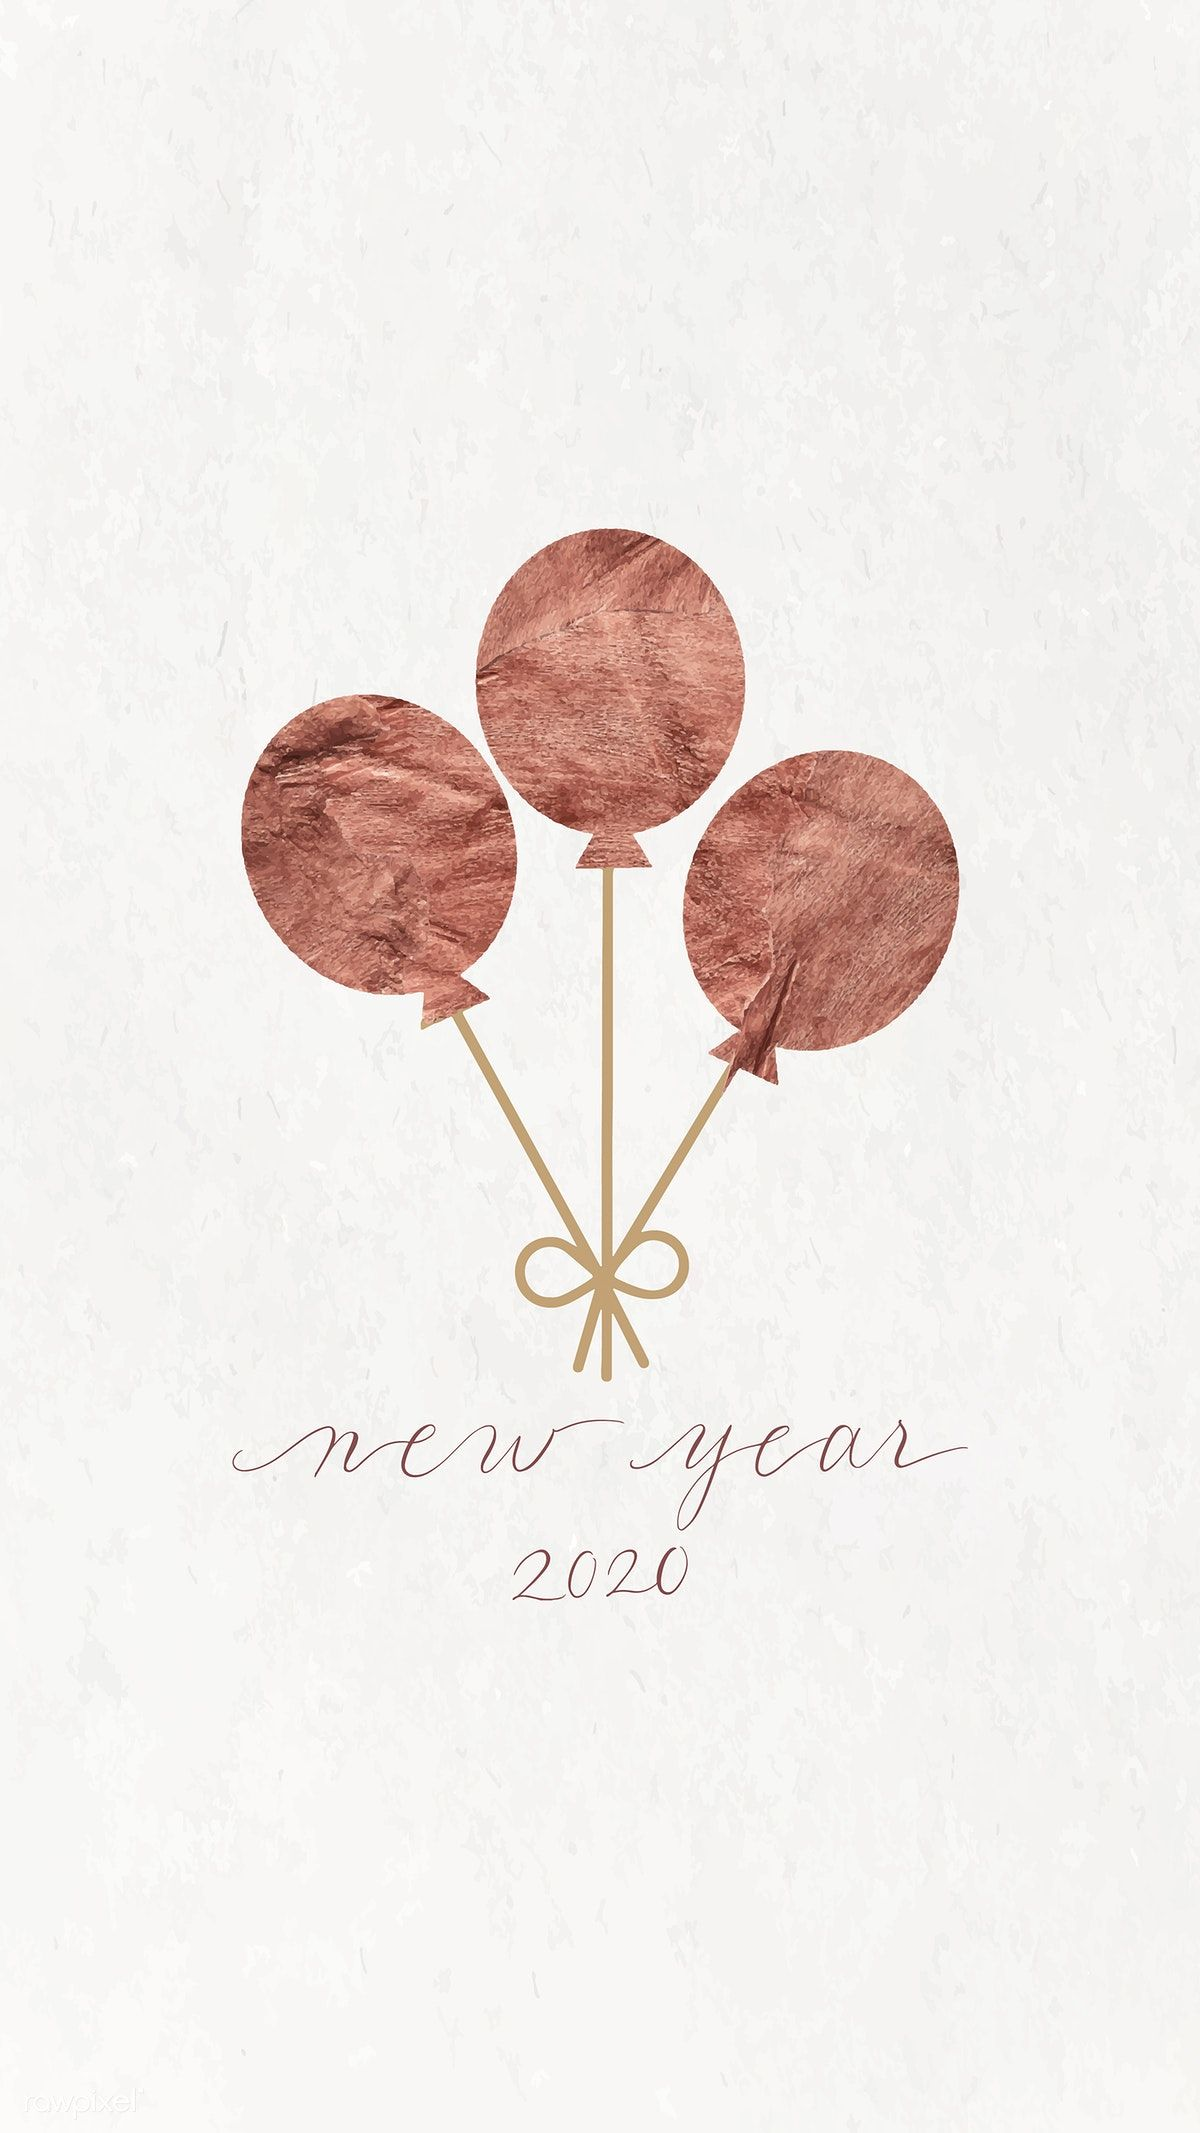 Download premium vector of New Year balloons doodle with New Year 2020 #newyearwallpaper